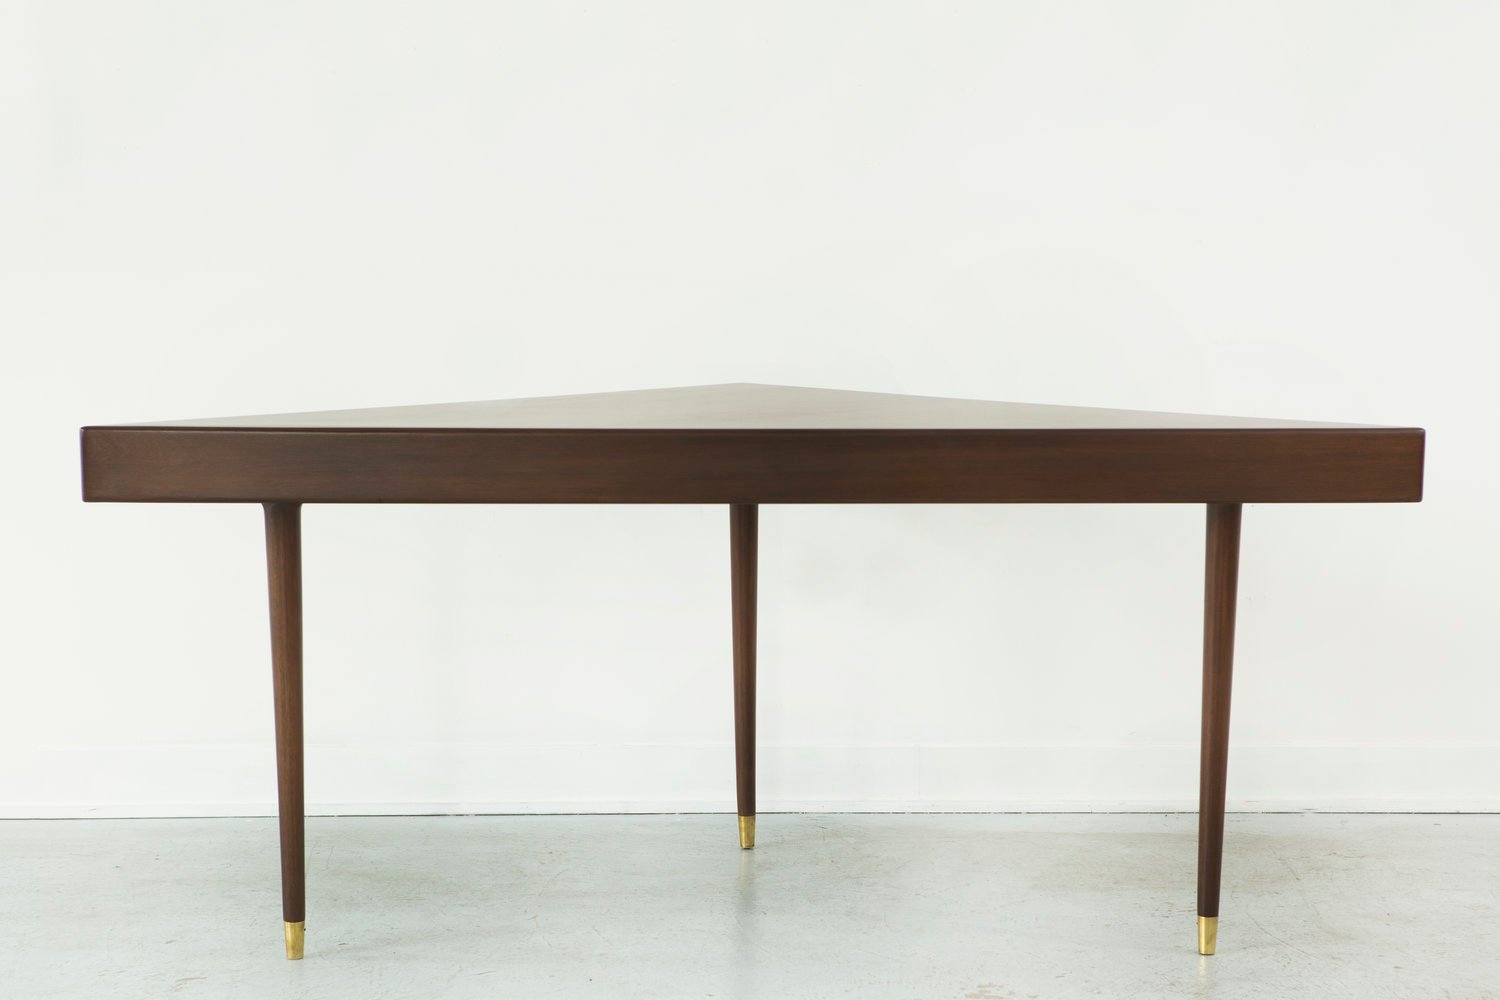 Triangular sofa table from harvey probber 1950s for sale for Sofa table rules